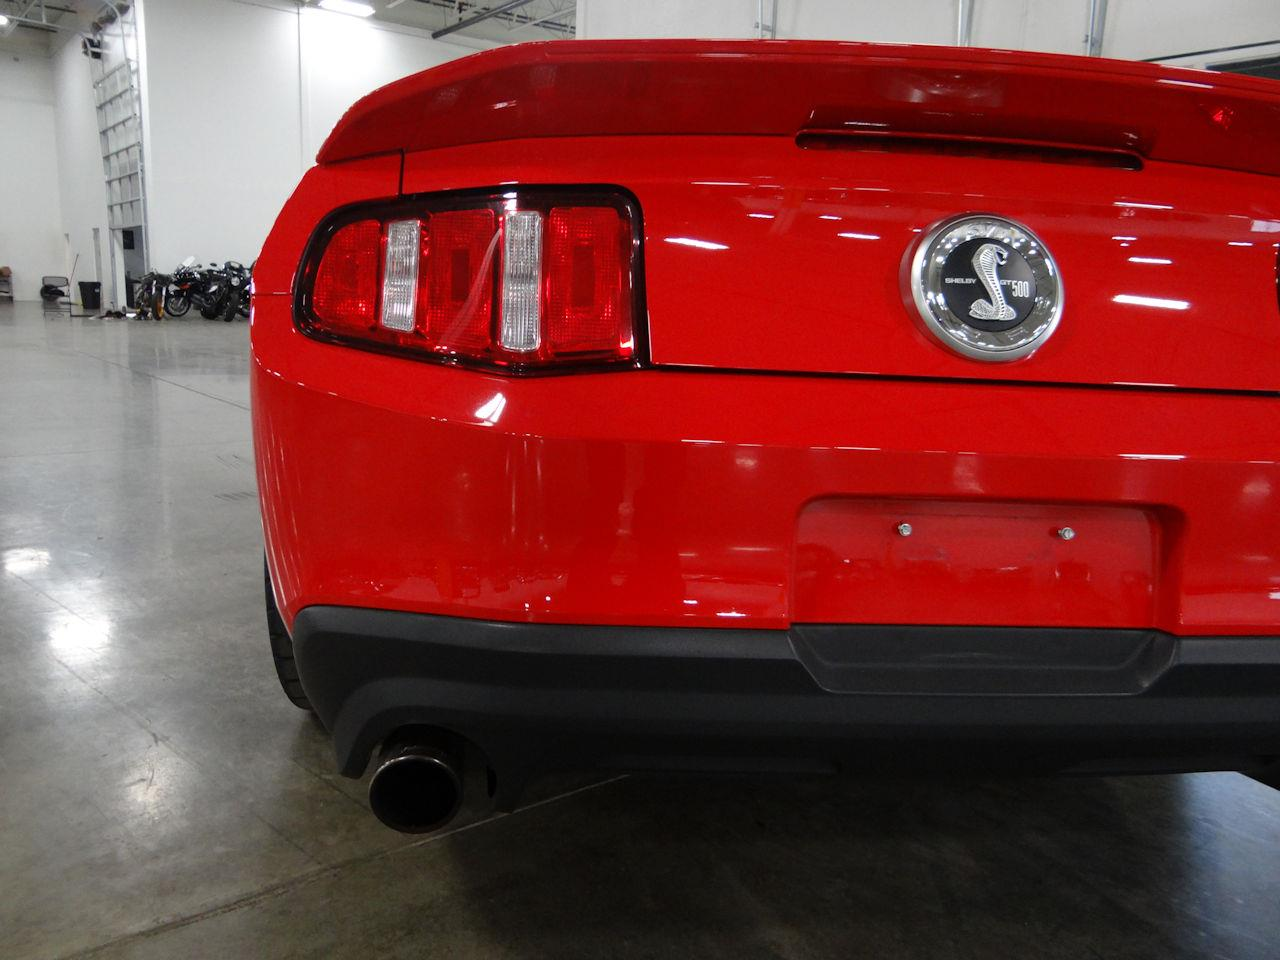 2011 Ford Mustang (CC-1340881) for sale in O'Fallon, Illinois